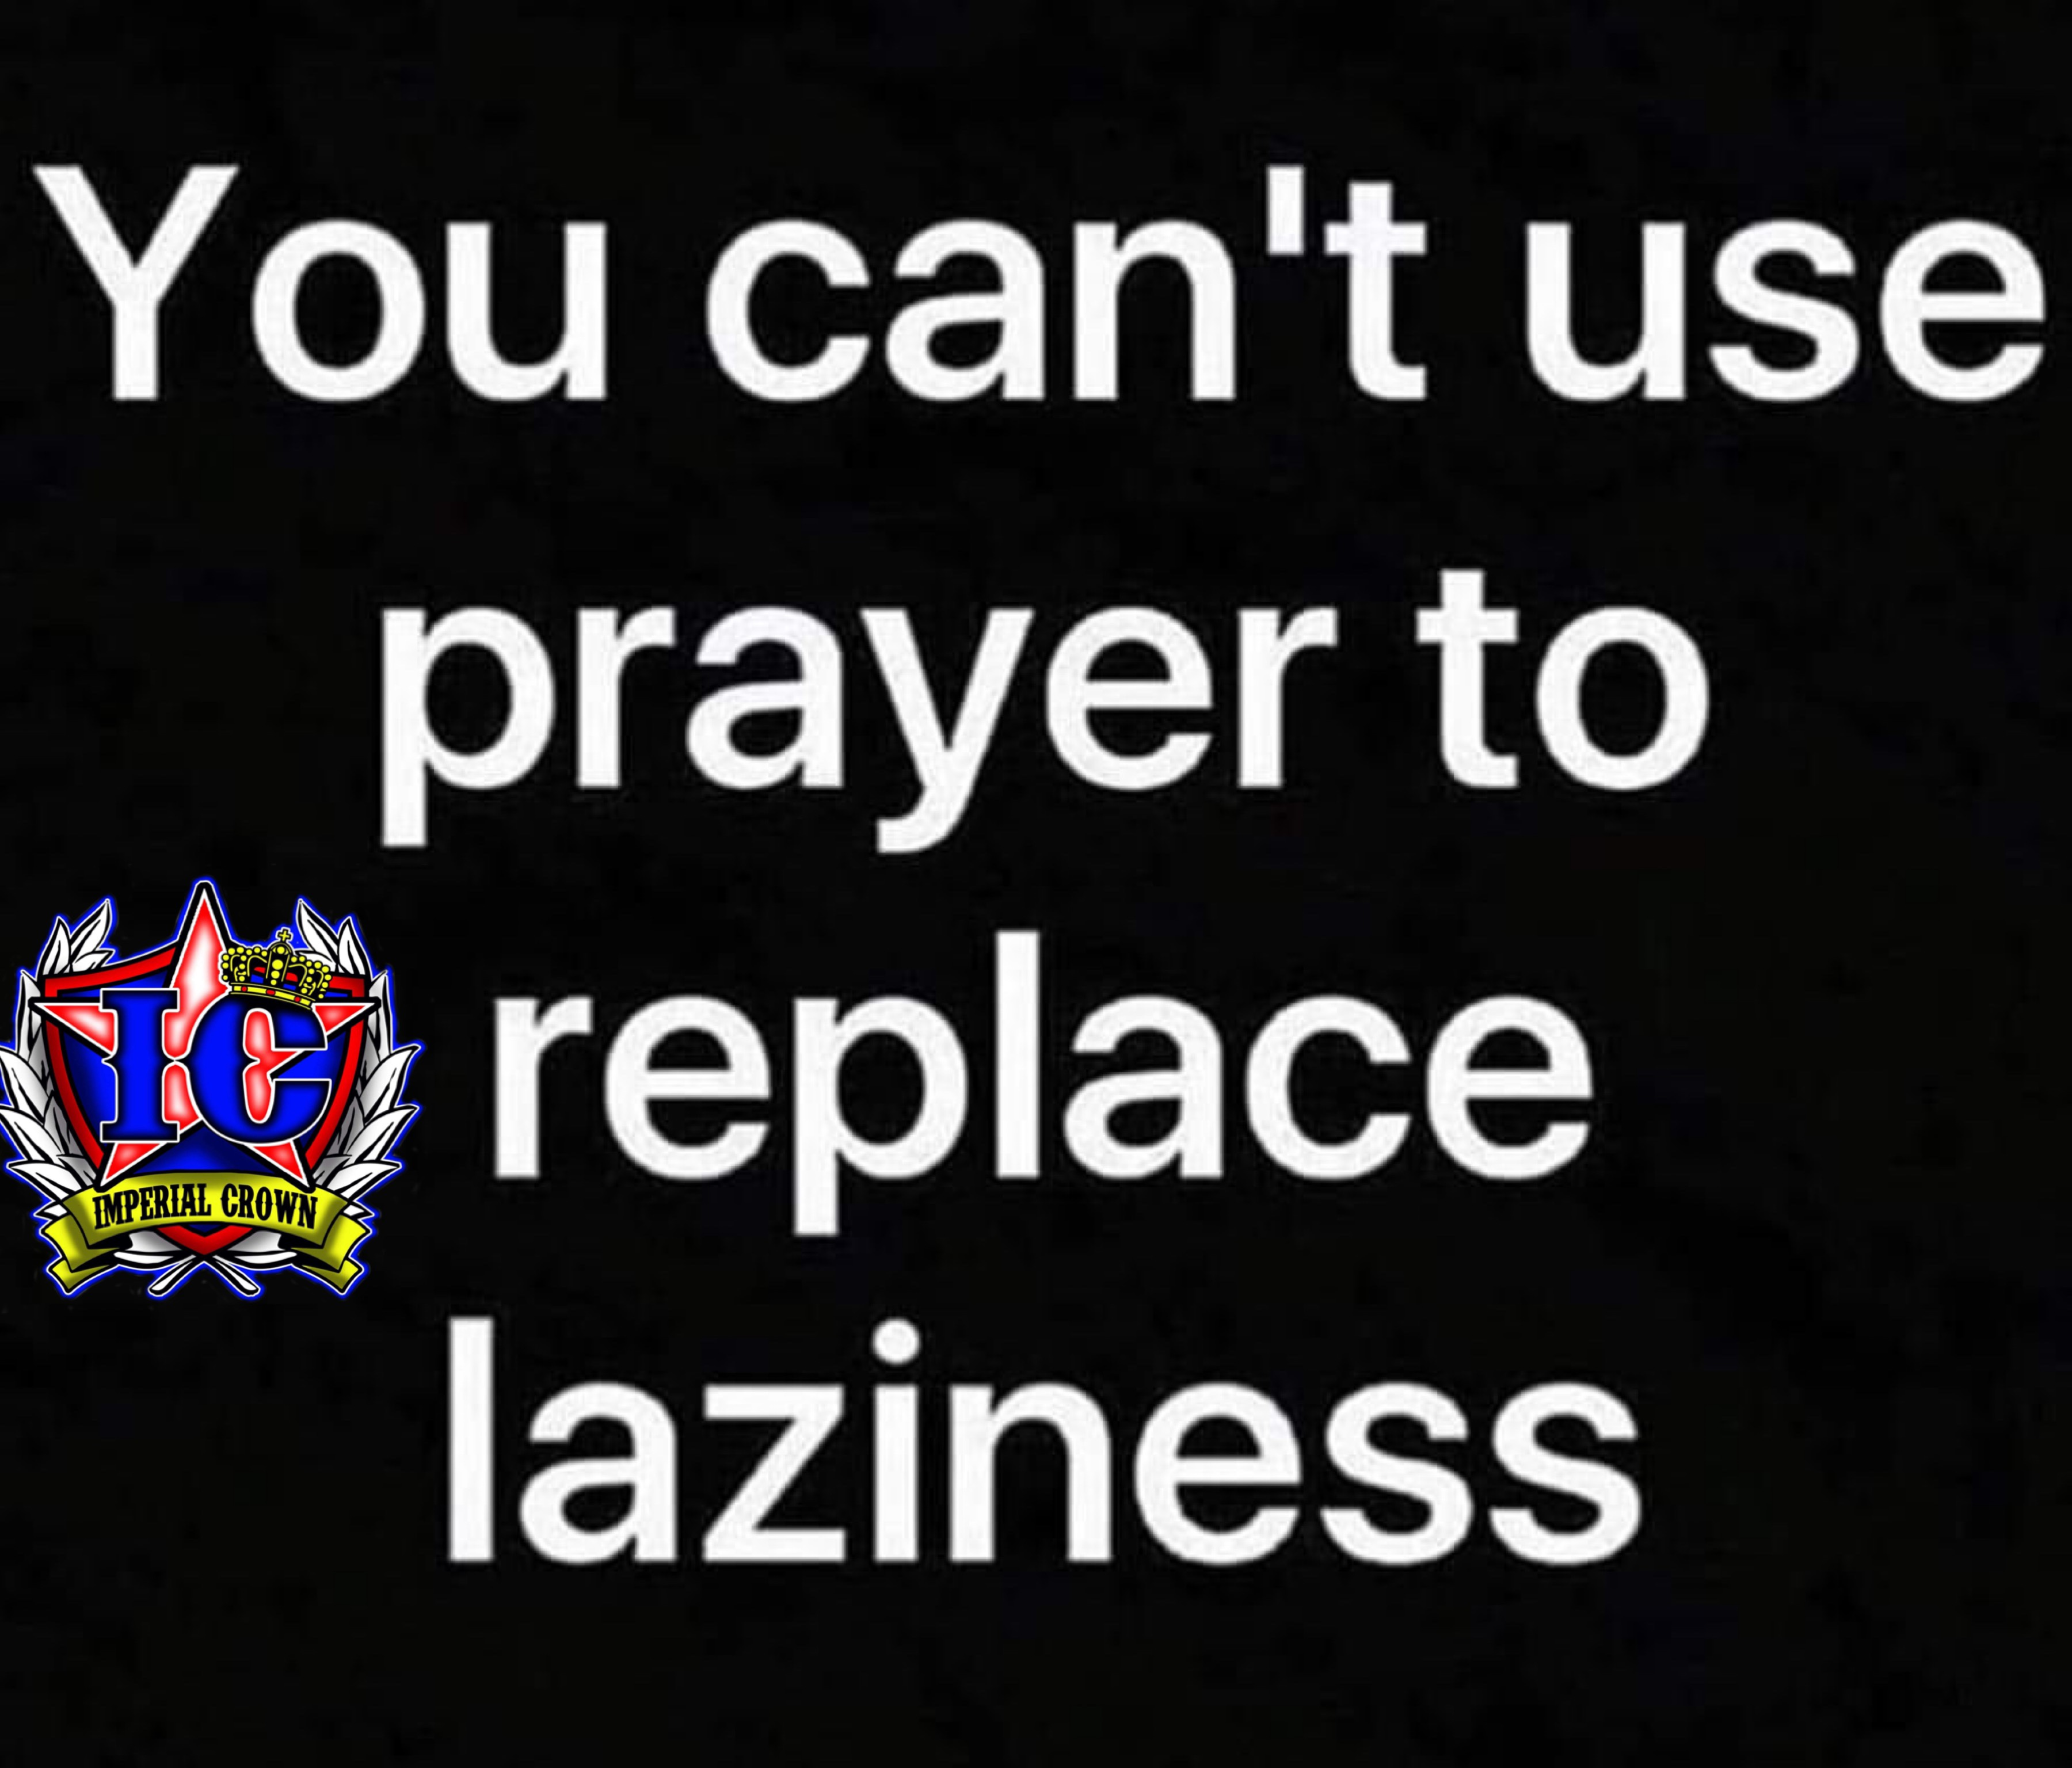 You can't use prayer to replace laziness